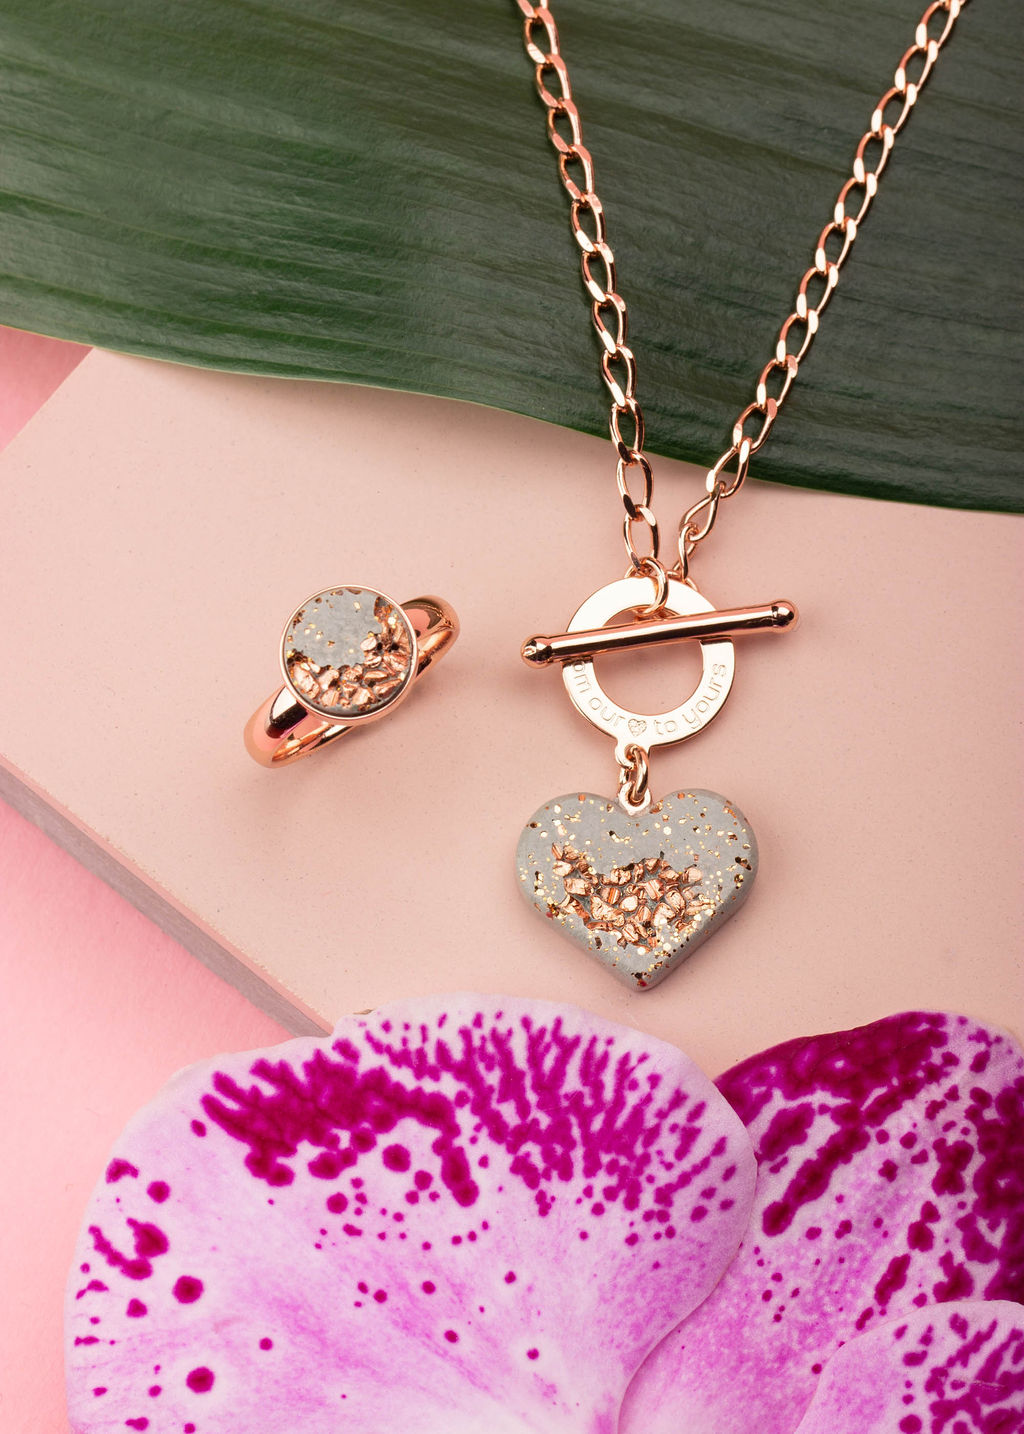 Tropical Jewelry Photography